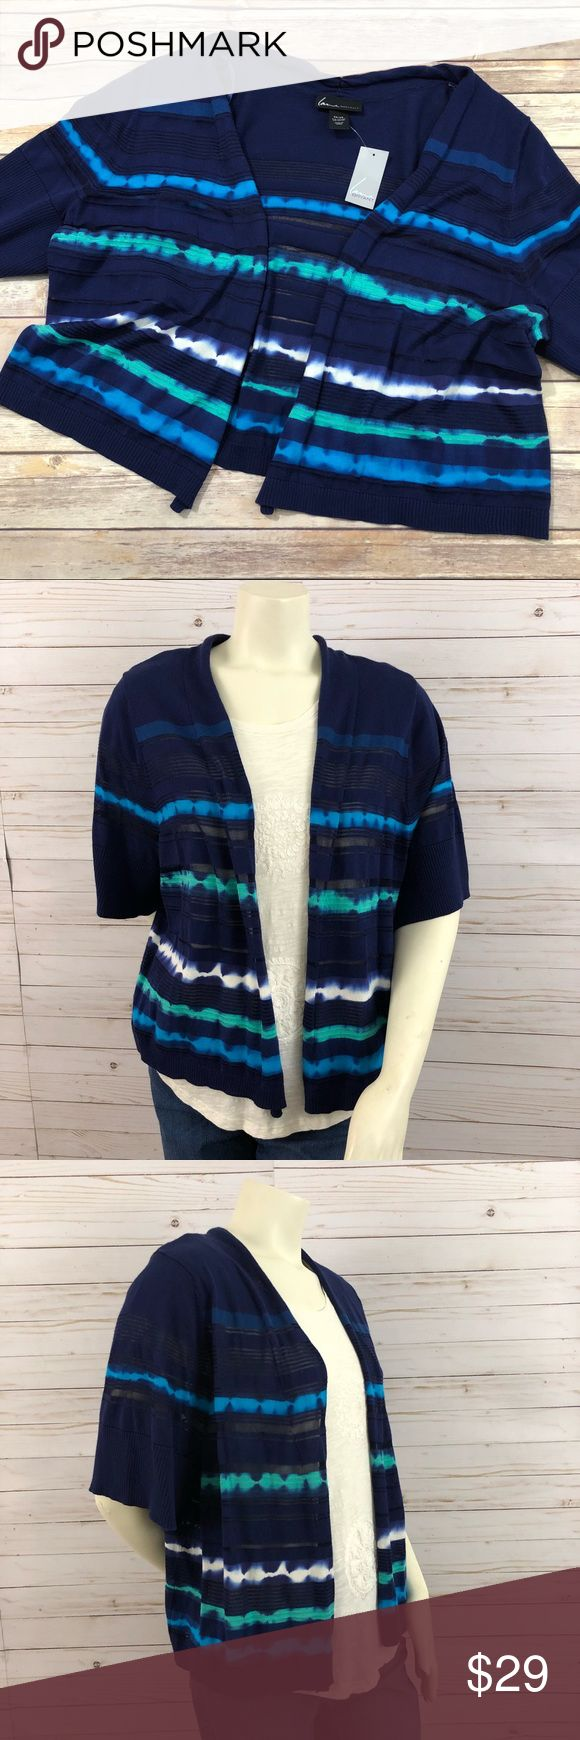 NWT Lane Bryant blue striped short sleeve cardigan NWT Lane Bryant open short sleeve cardigan. Navy Blue striped with green and white. Light material, some striped are semi sheer, you can see it on the mannequin. Size 26/28 Lane Bryant Tops